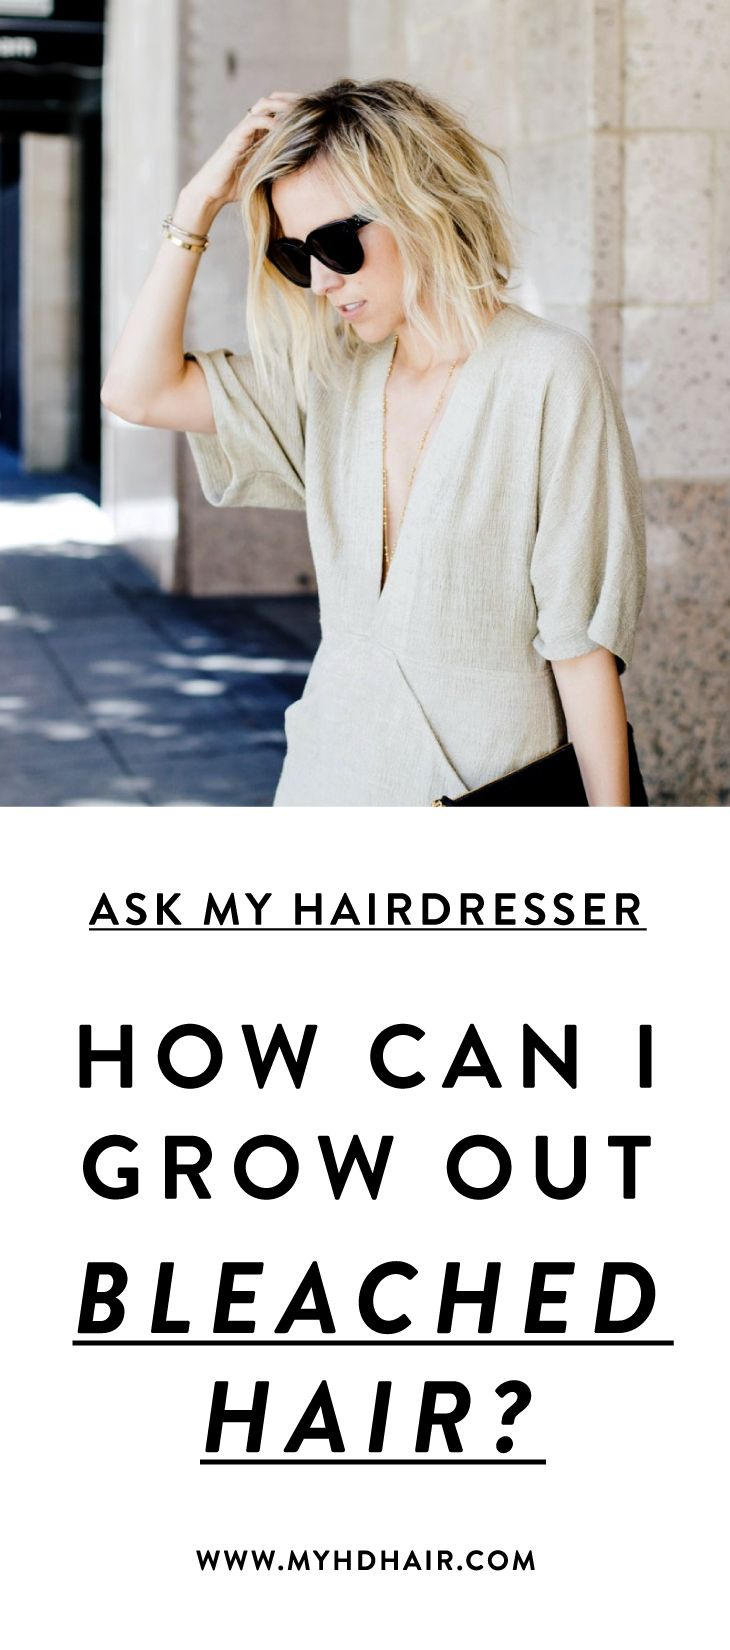 Ask My Hairdresser: How can I grow out my Bleached Hair? We mean in a tasteful, not disguising an a bad ombre, kind of way.